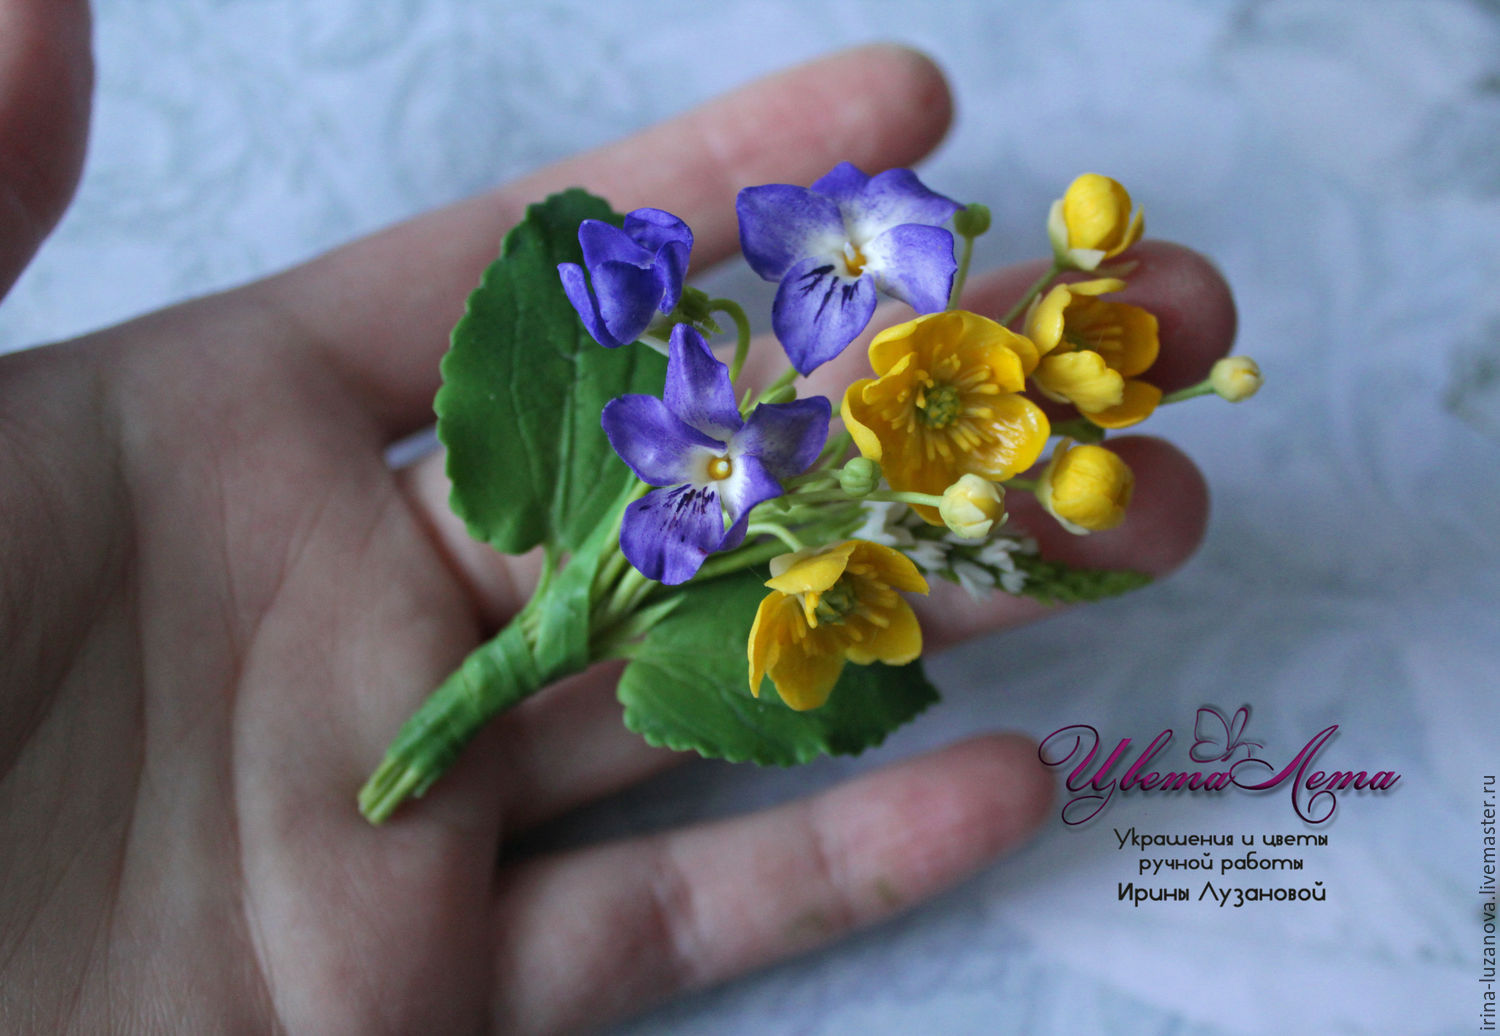 aaae products gold venus looking fullxfull violet pin enamel il hand jewelry glass wildflower flower brooch